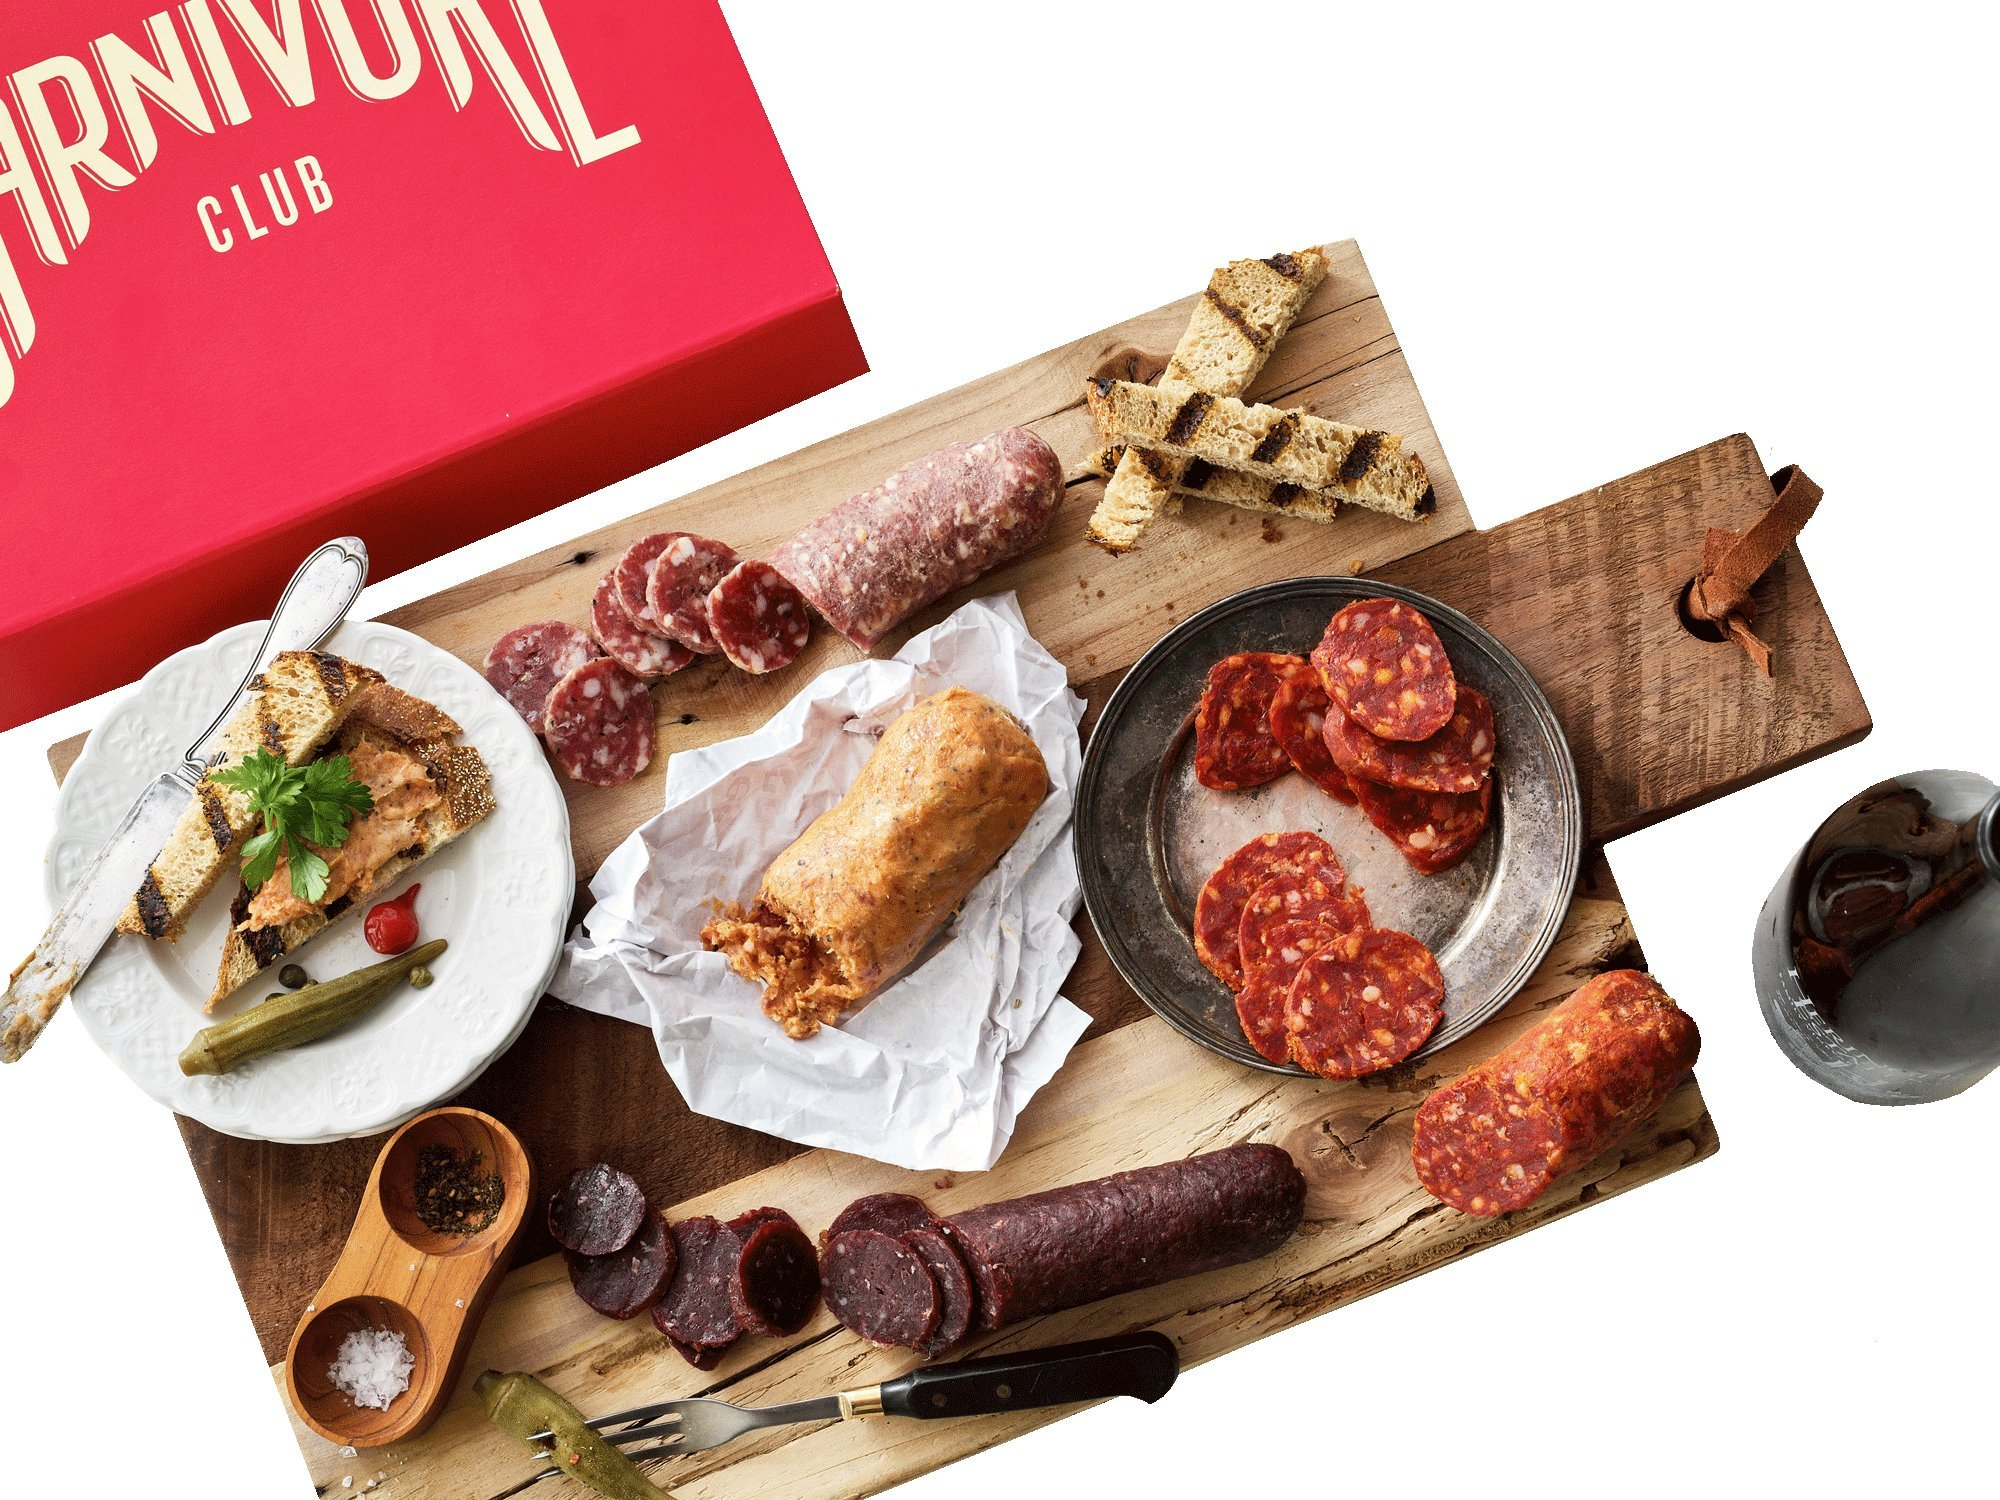 Carnivore Club Gift Box (Gourmet Food Gift) - Food Basket - Comes in a Premium Gift Box - 5 Italian Meats Sampler From Nduja Artisans - Great with Crackers & Cheese & Wine